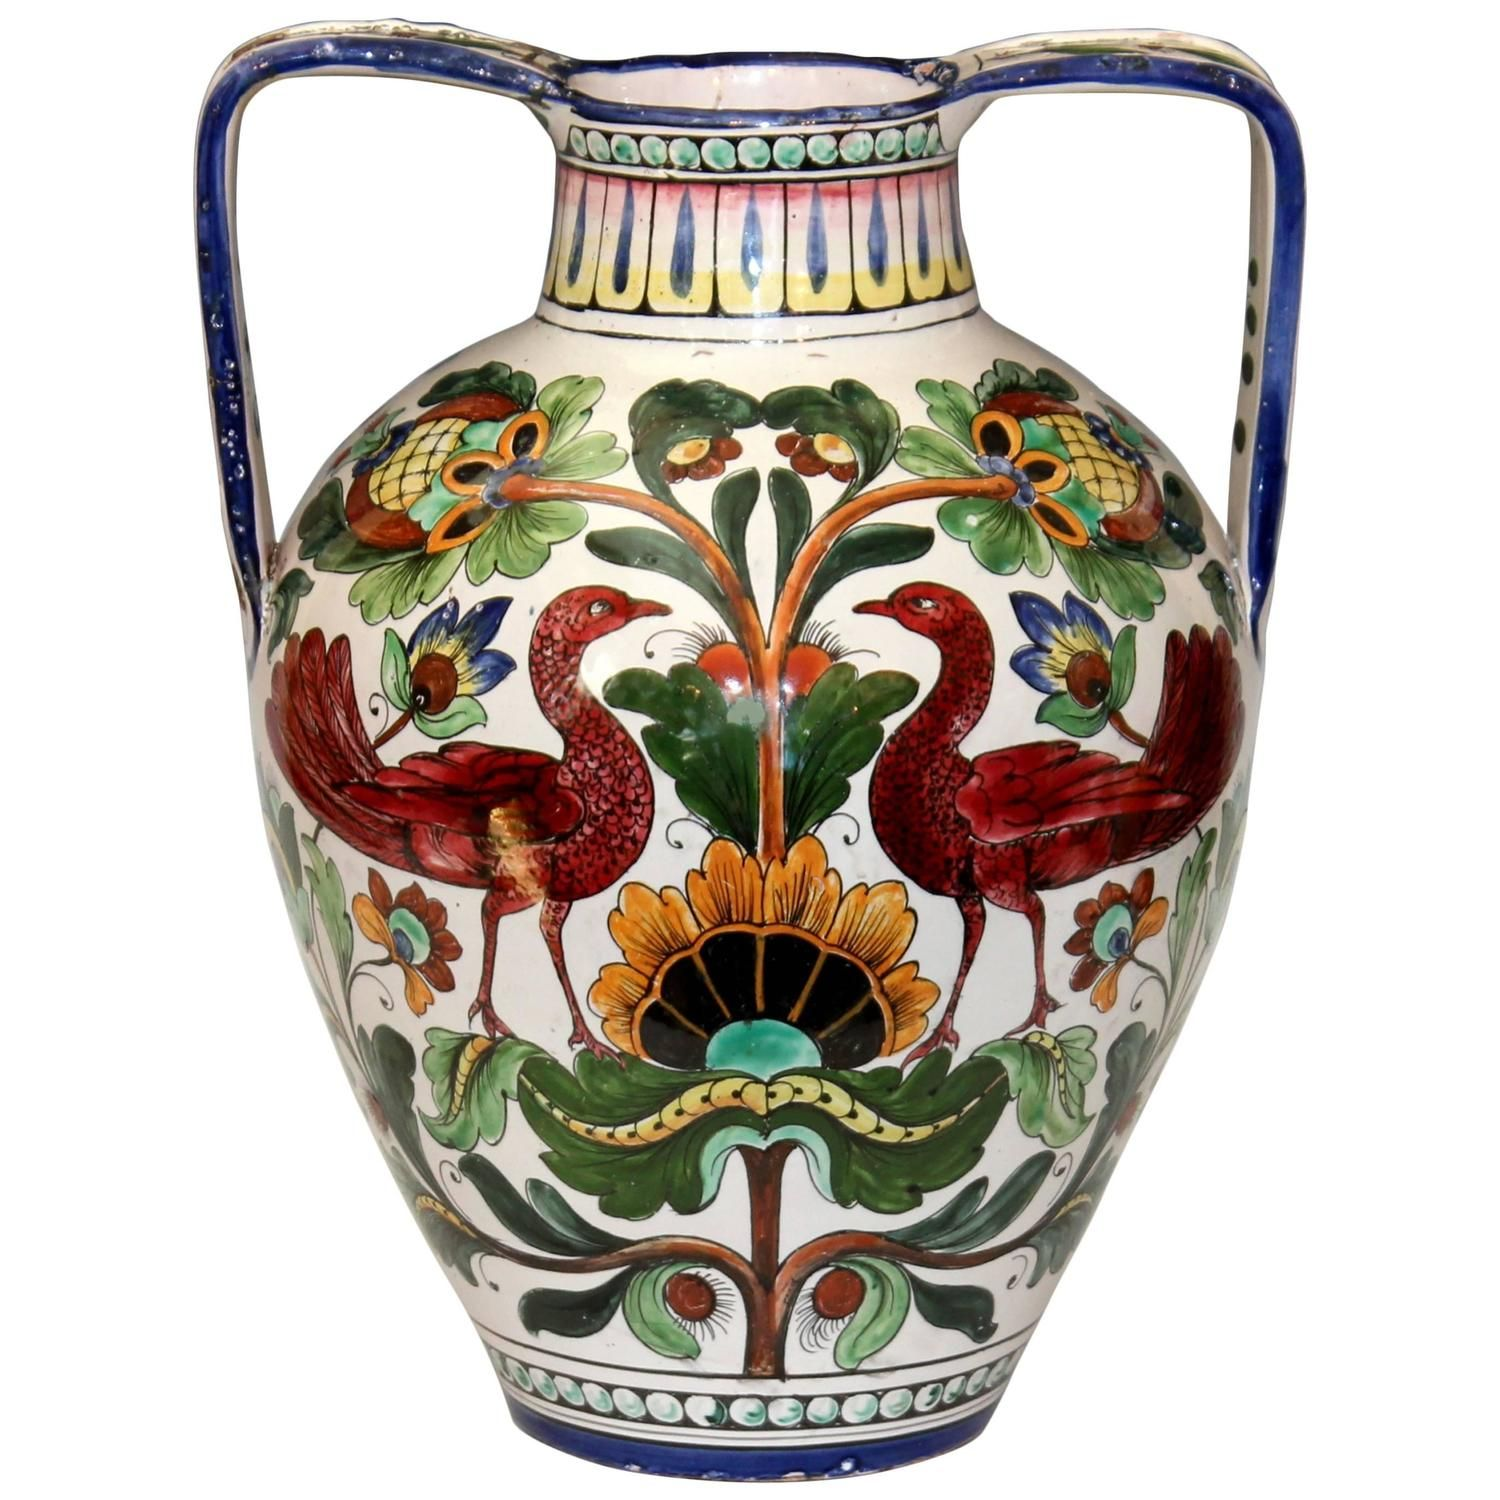 Piediluco large old antique italian pottery faience majolica jug piediluco large old antique italian pottery faience majolica jug peacock vase reviewsmspy